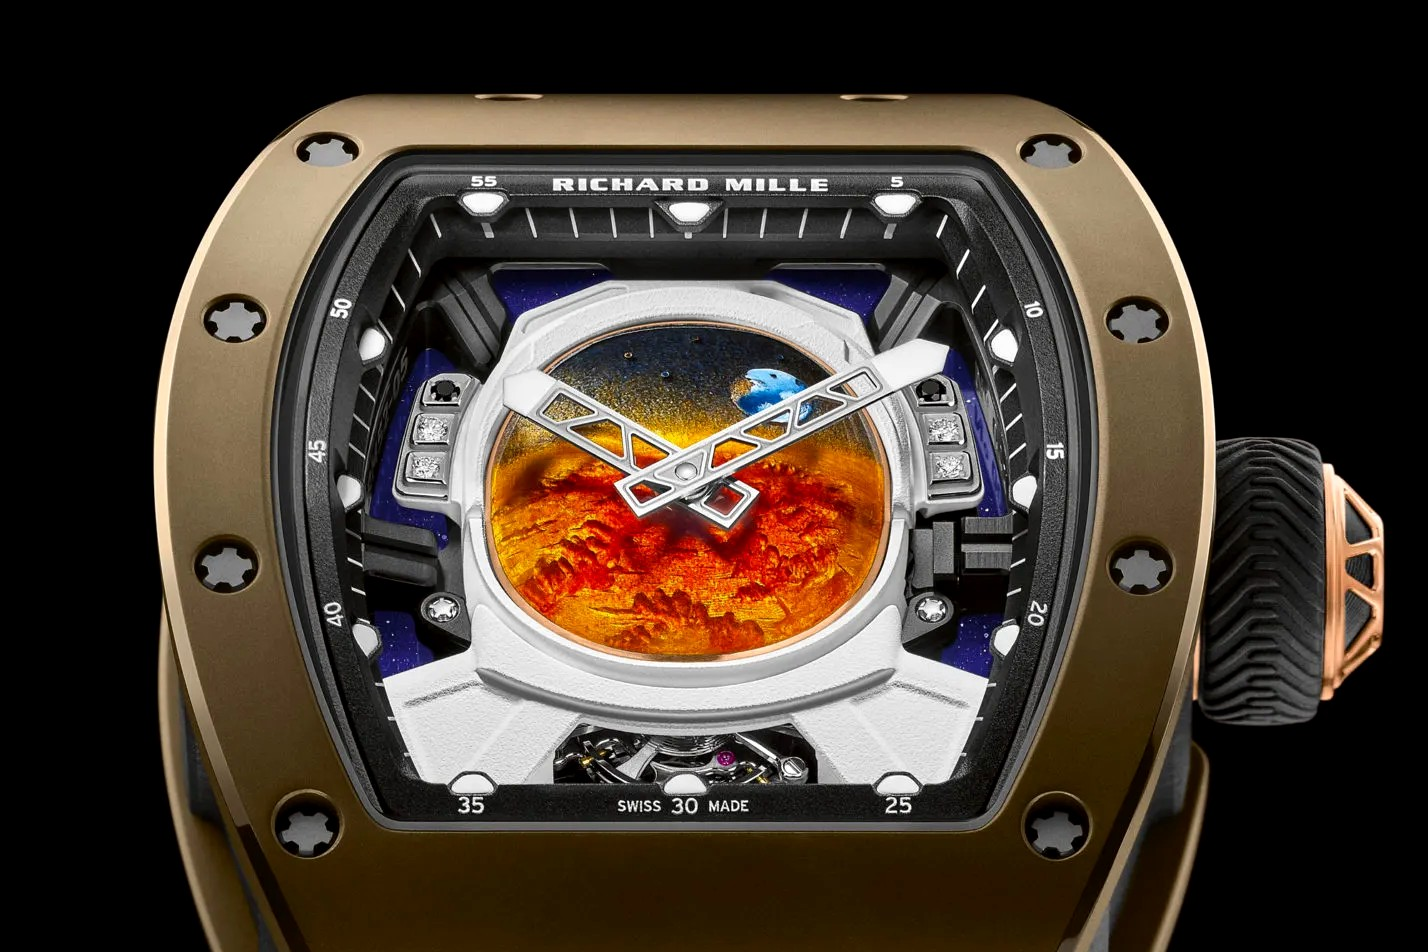 What is the top 10 most expensive things in the world to buy on Amazon for money